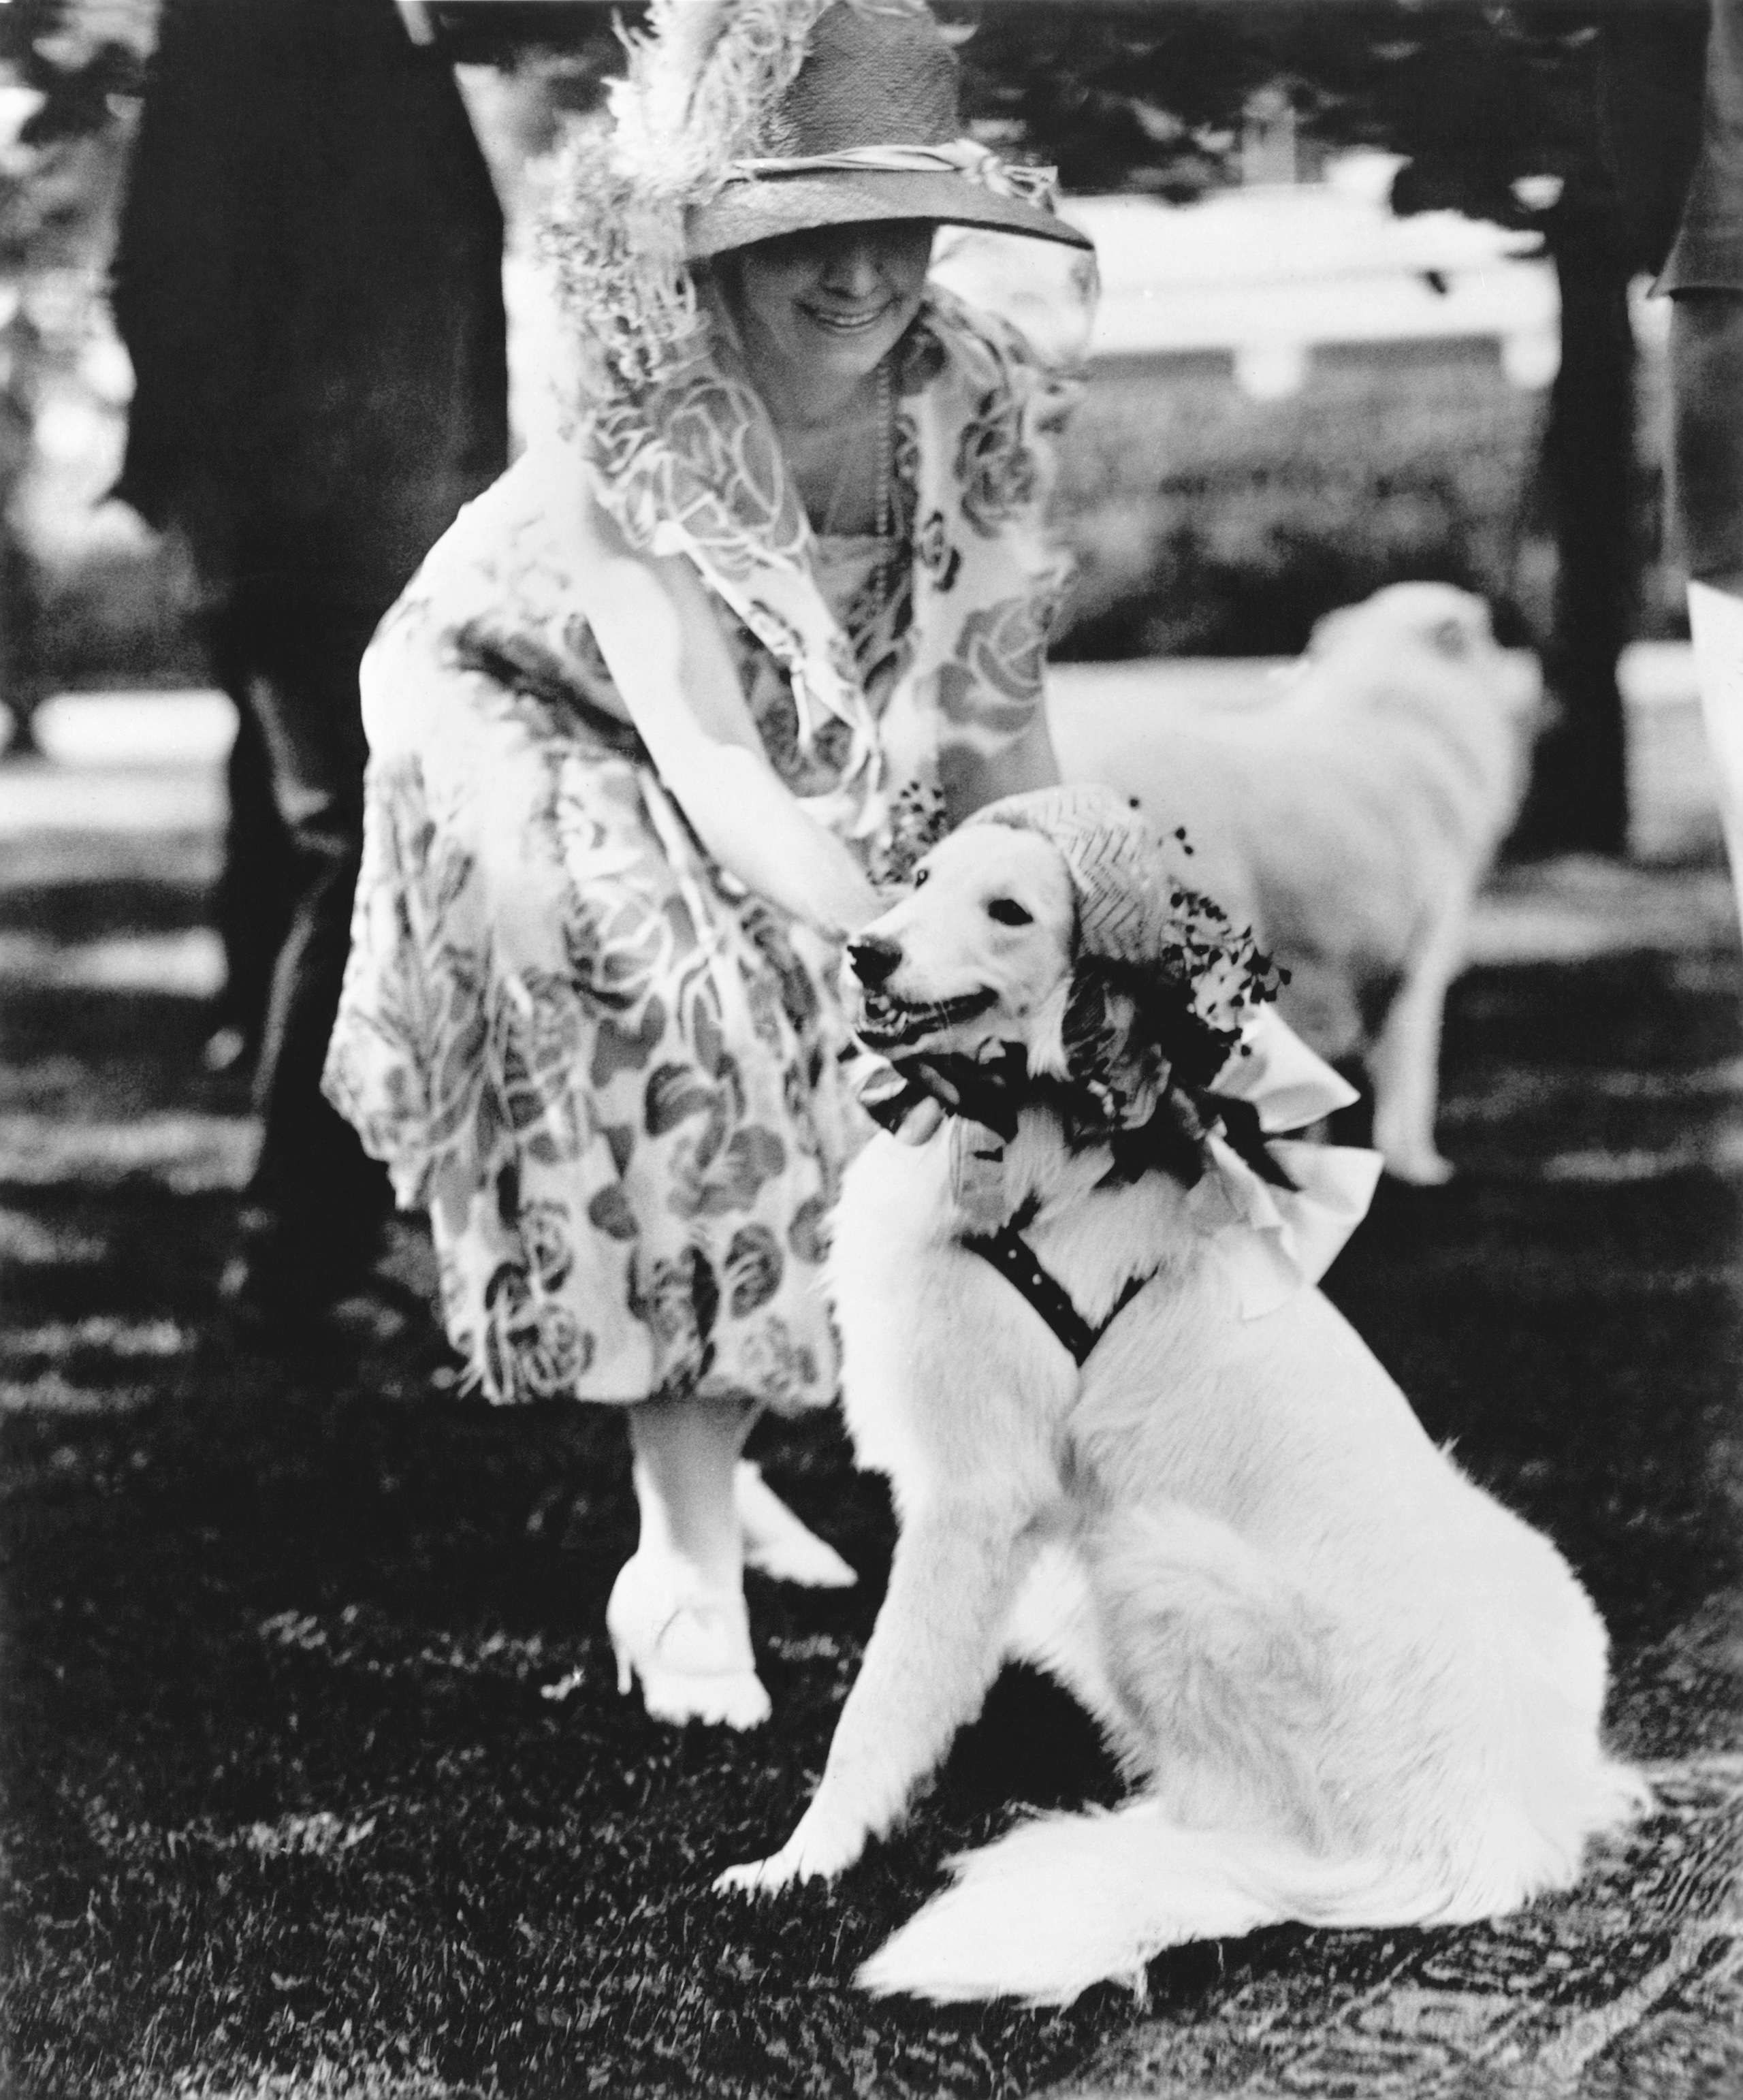 First Lady, Grace Coolidge, dresses up her white collie, Rob Roy, in a bonnet for a White House garden party, June 1, 1926.